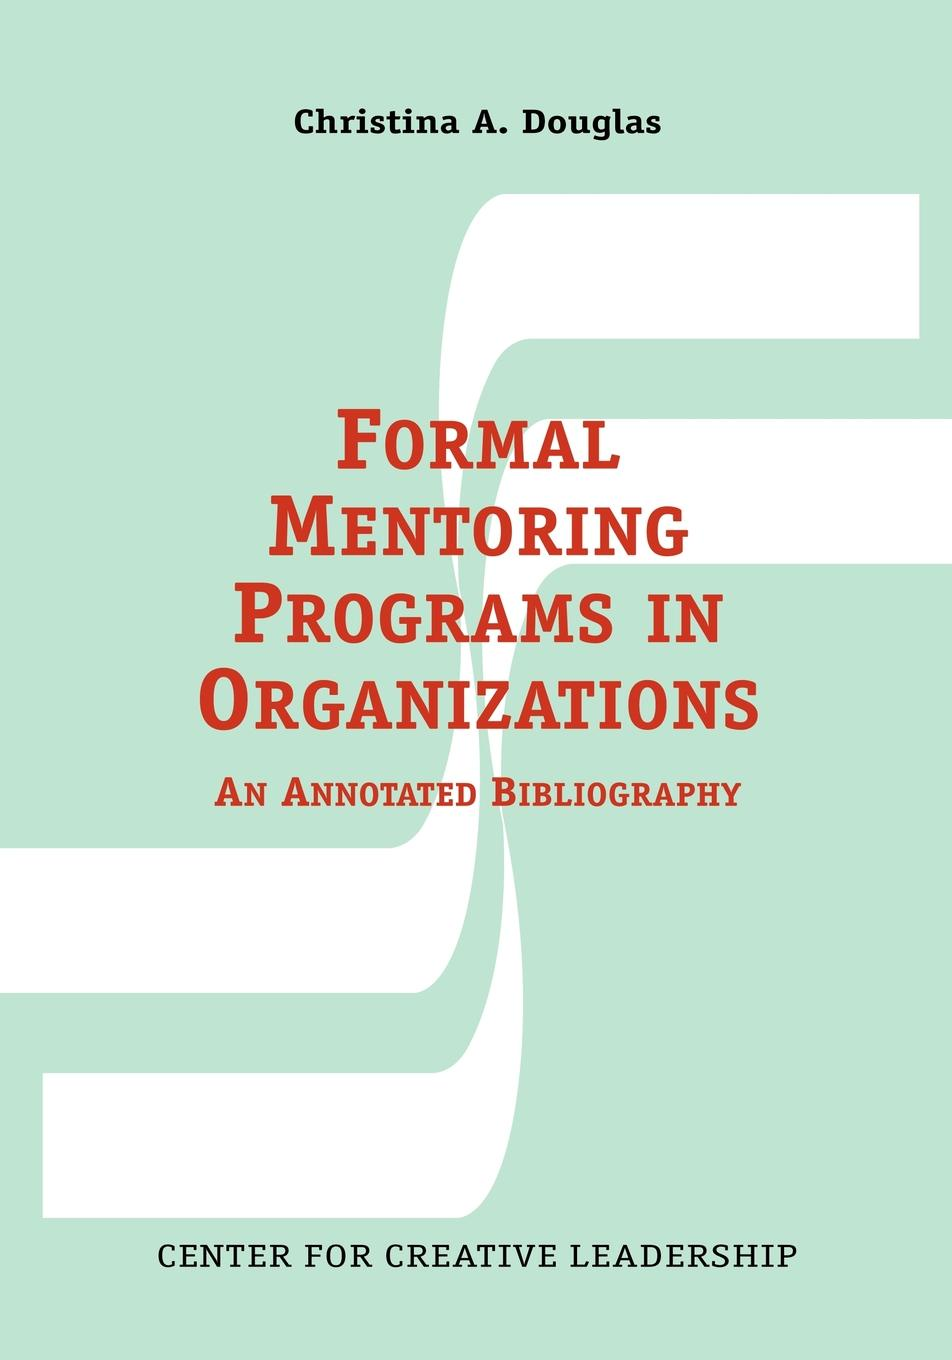 Christina A. Douglas Formal Mentoring Programs in Organizations. An Annotated Bibliography preschool programs for the disadvantaged